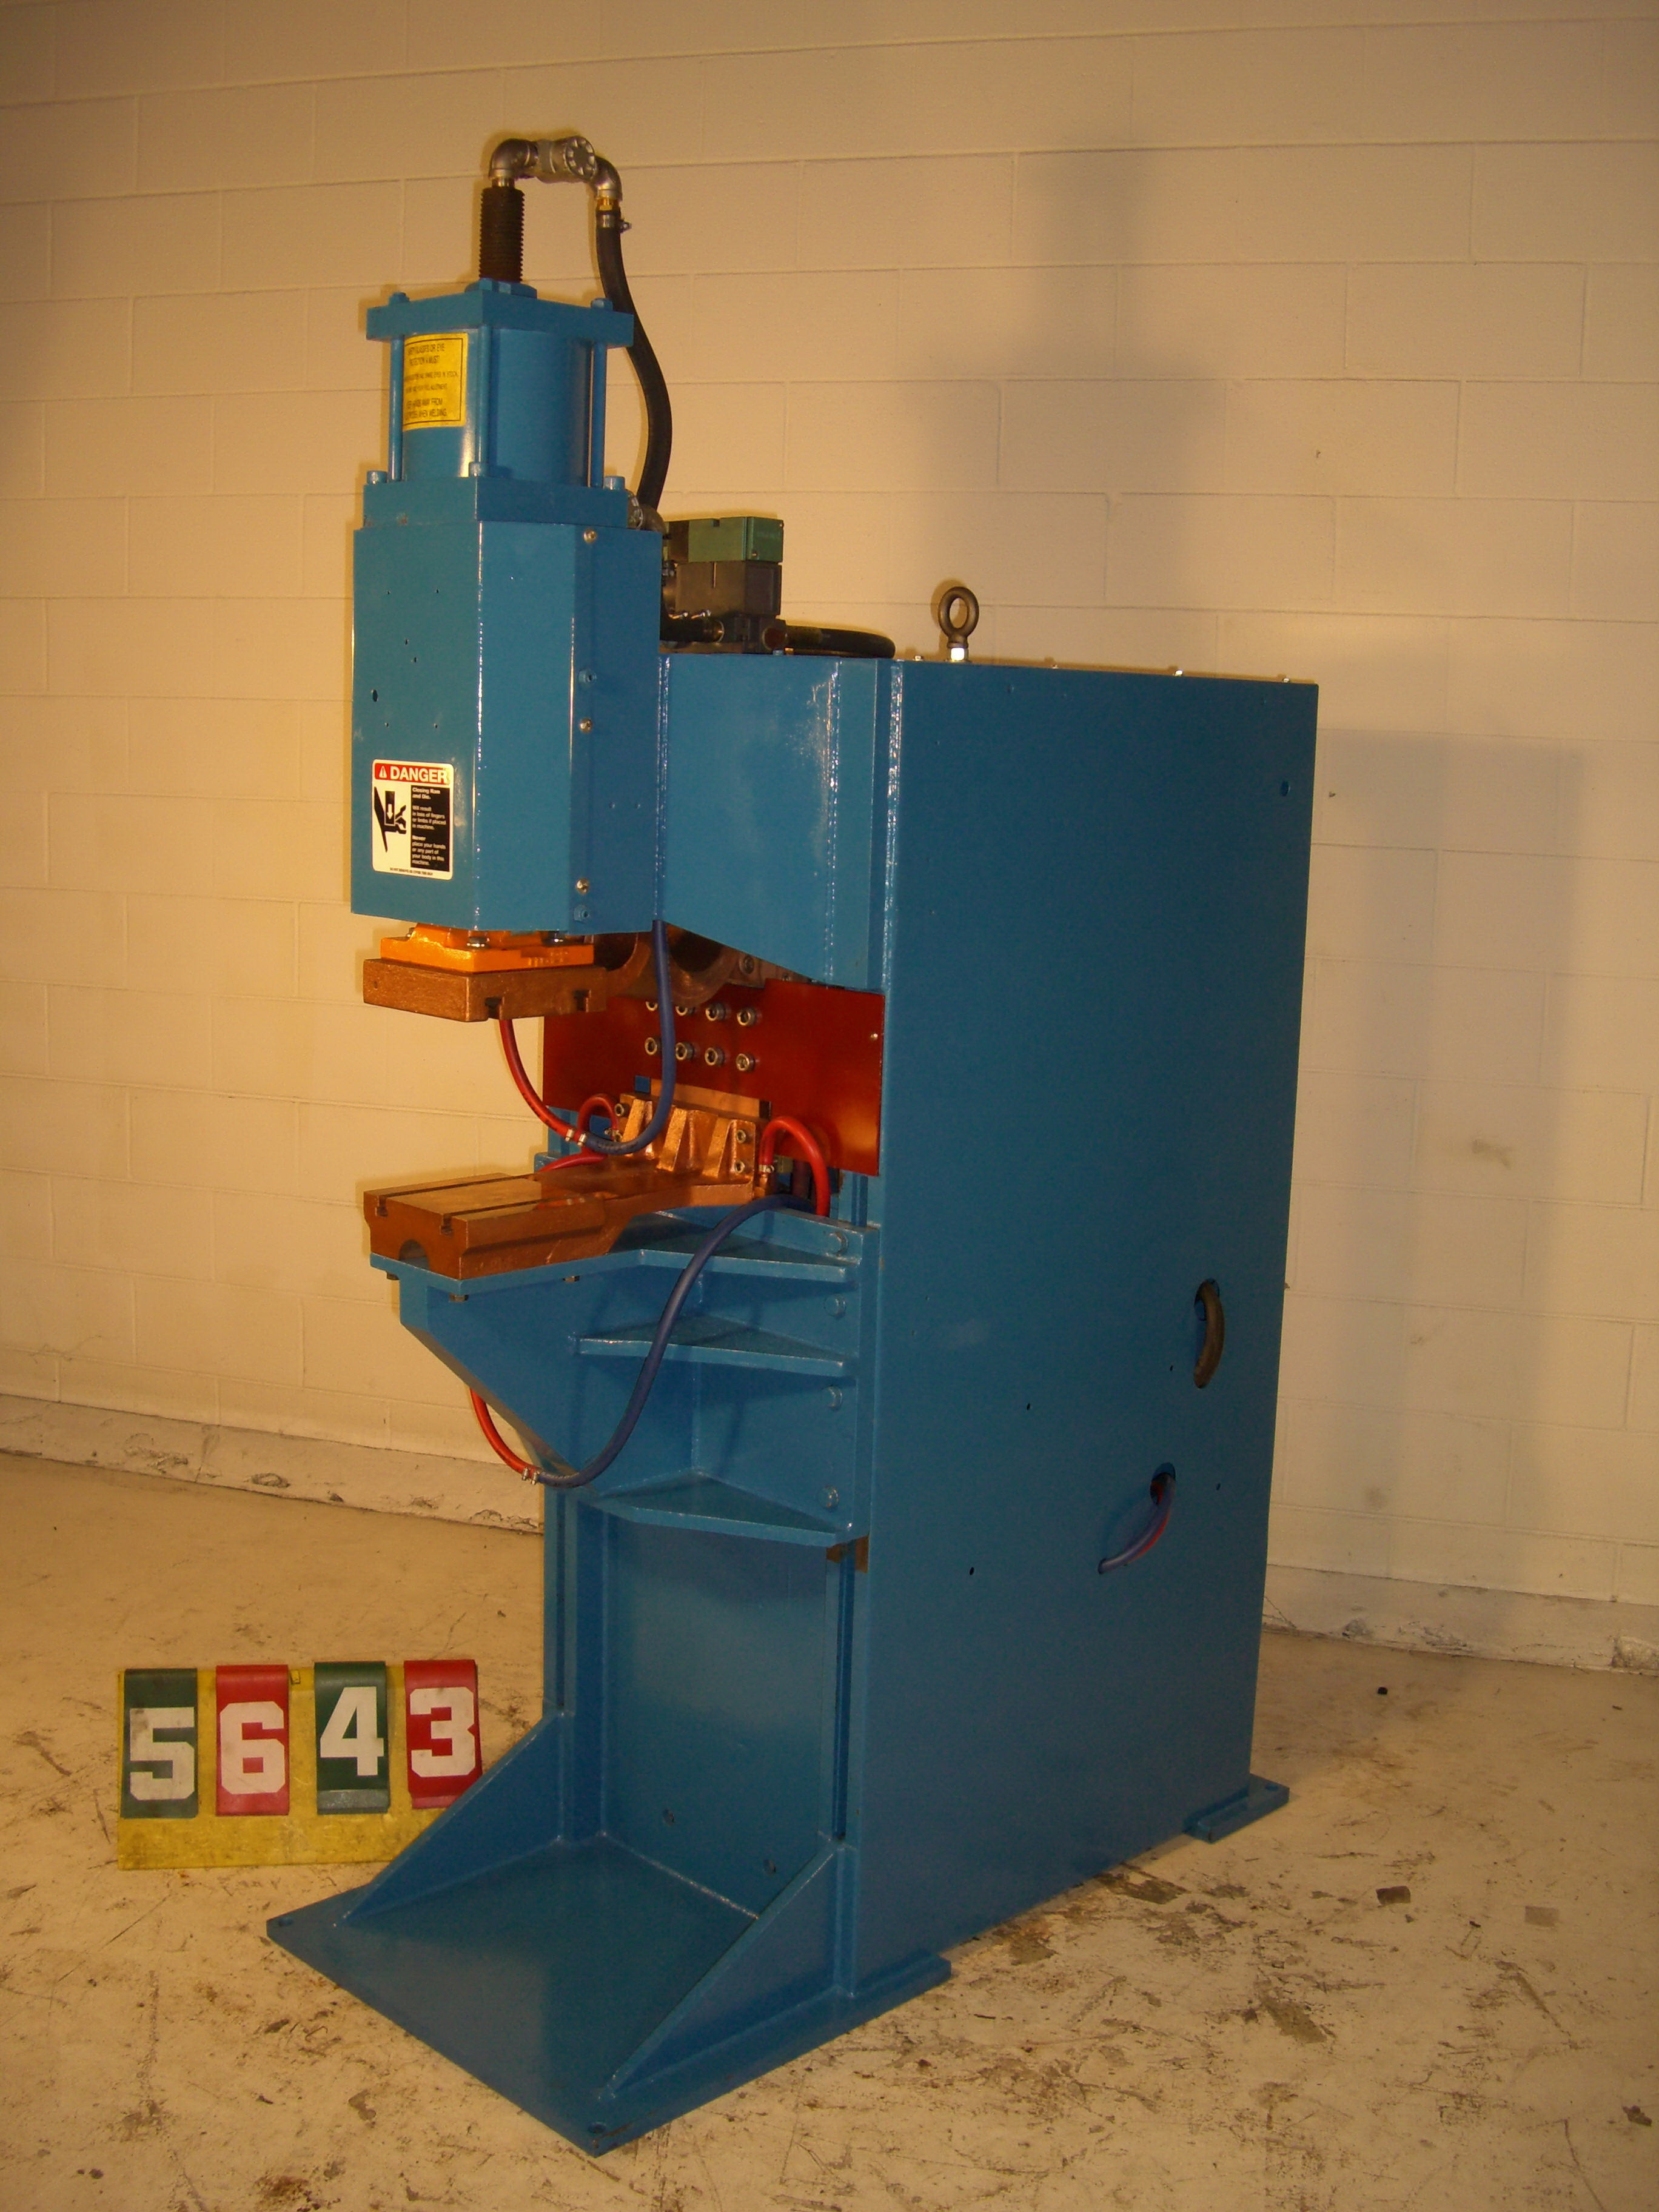 "150 KVA Peer projection welder, 12"" throat, T-slot platens, 440V, single phase AC, #6630"